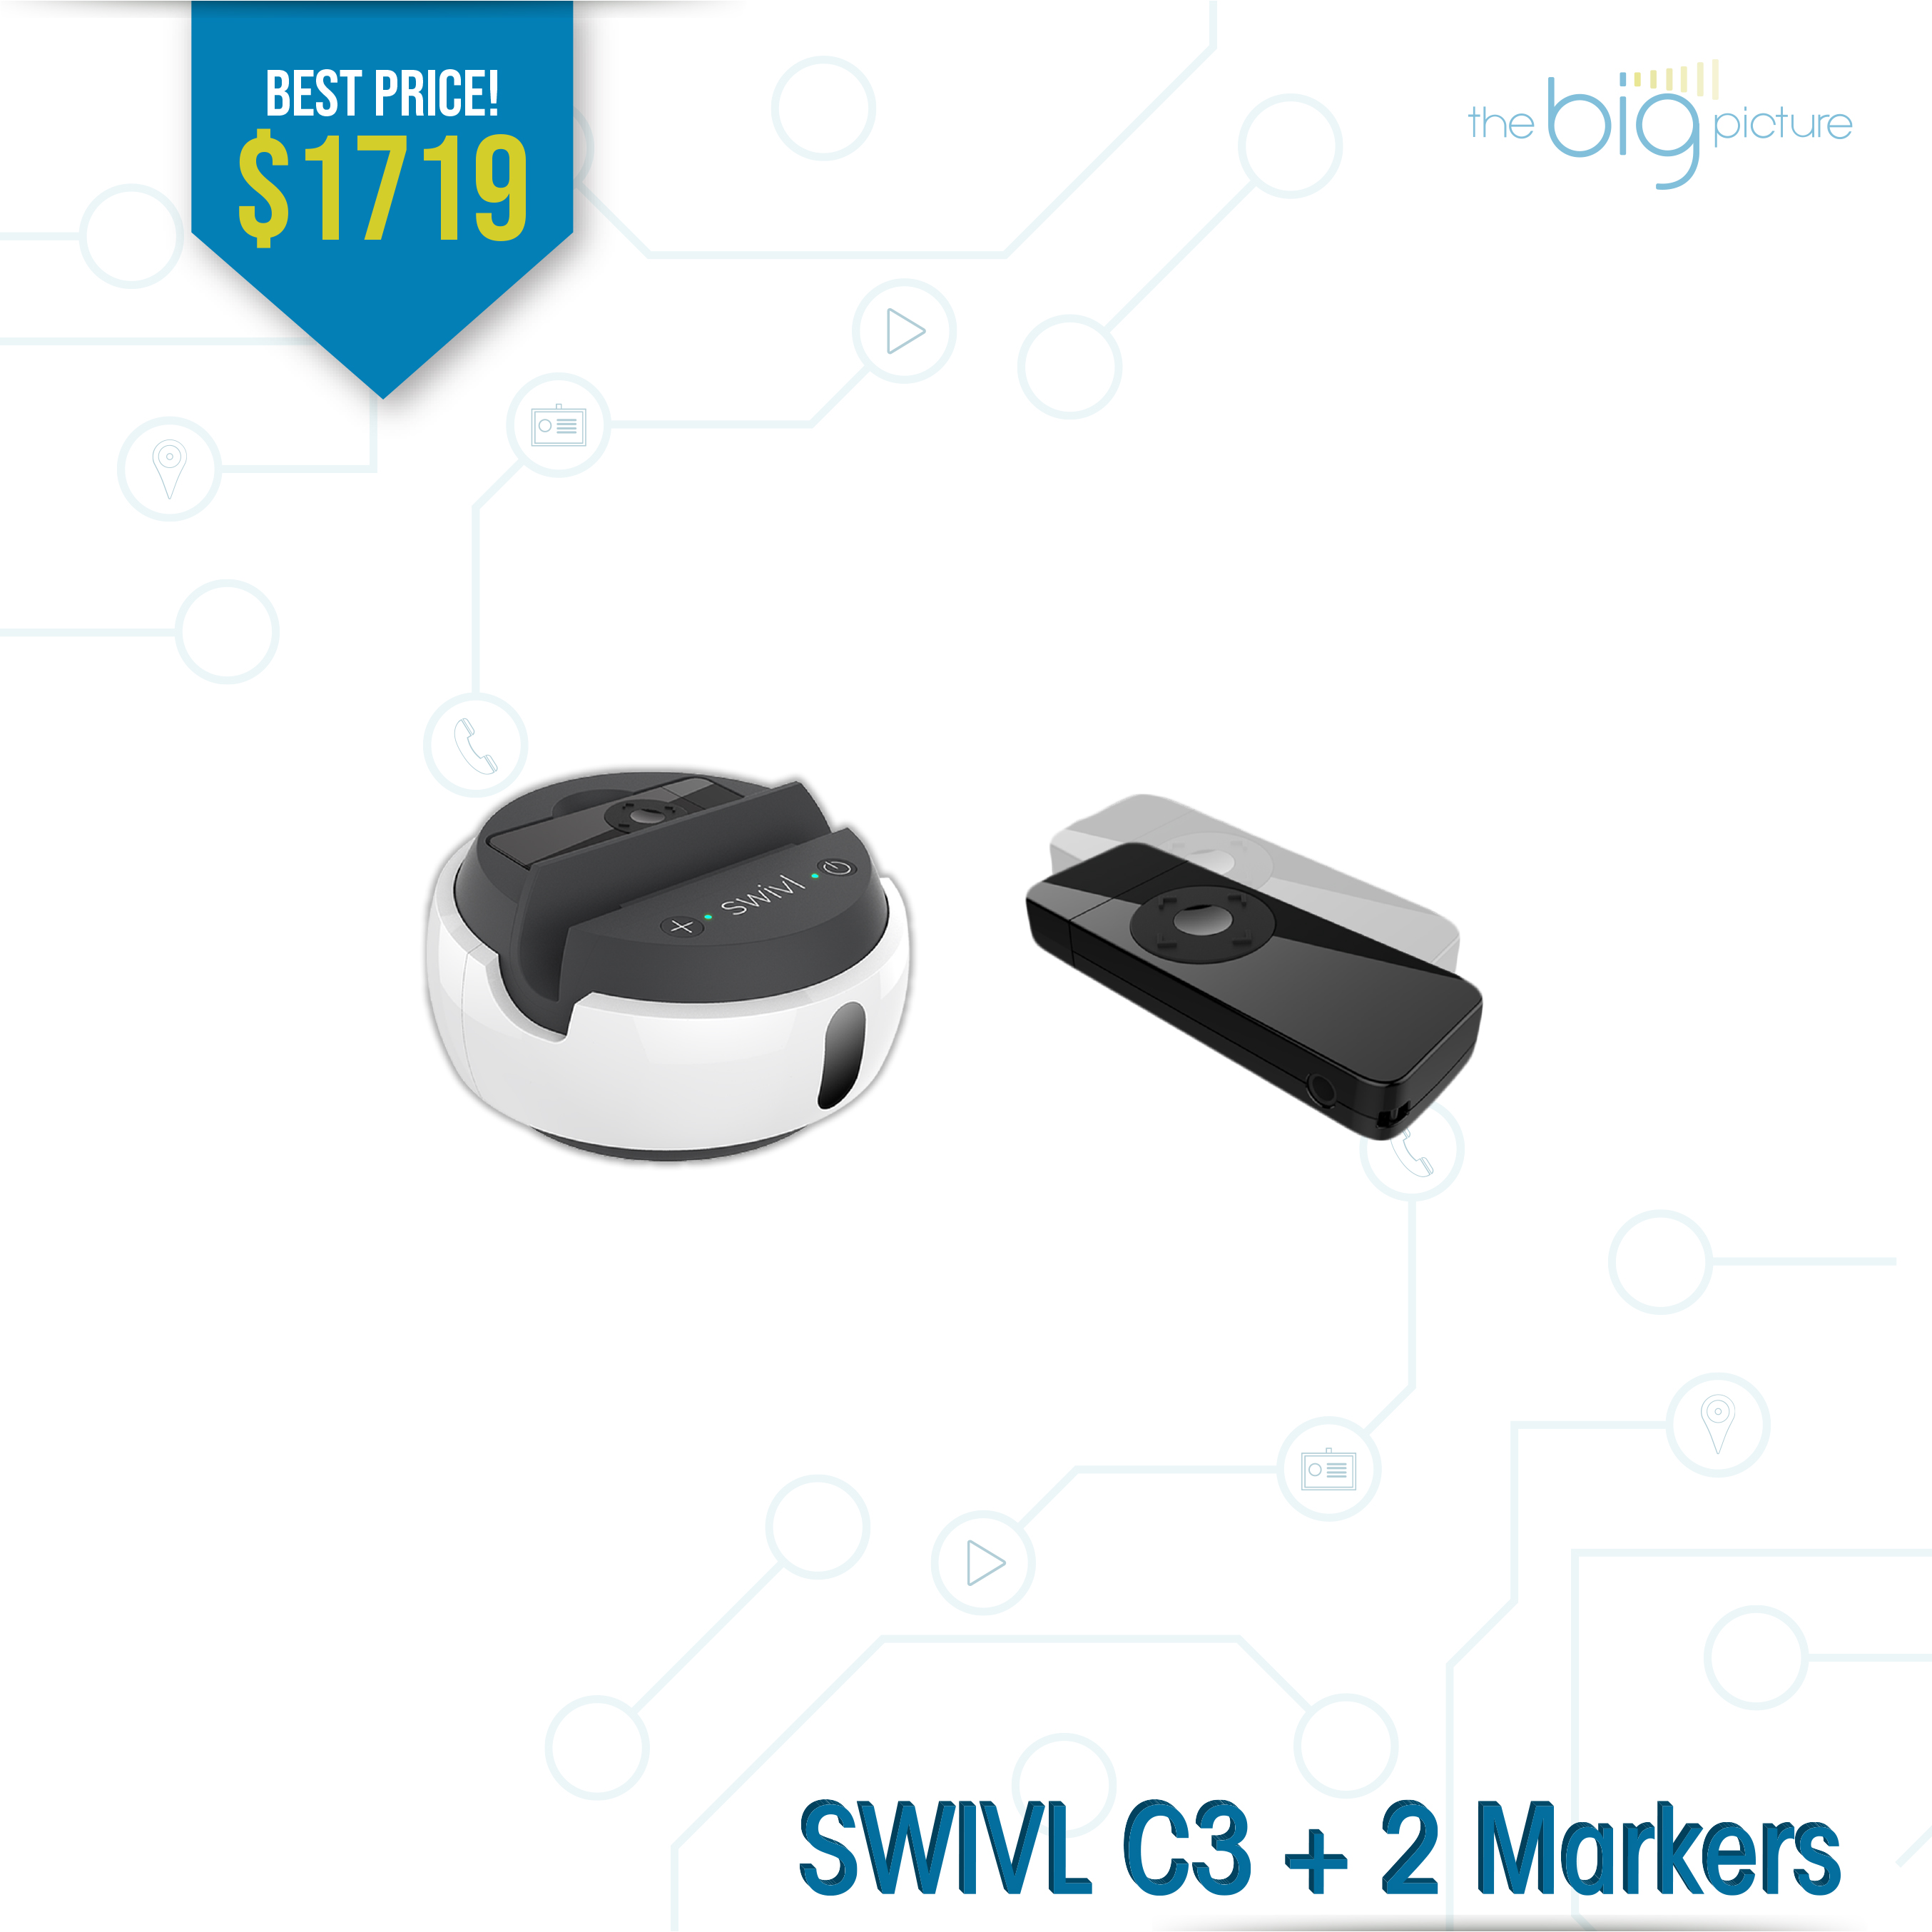 A set of products for SWIVL C3 + 2